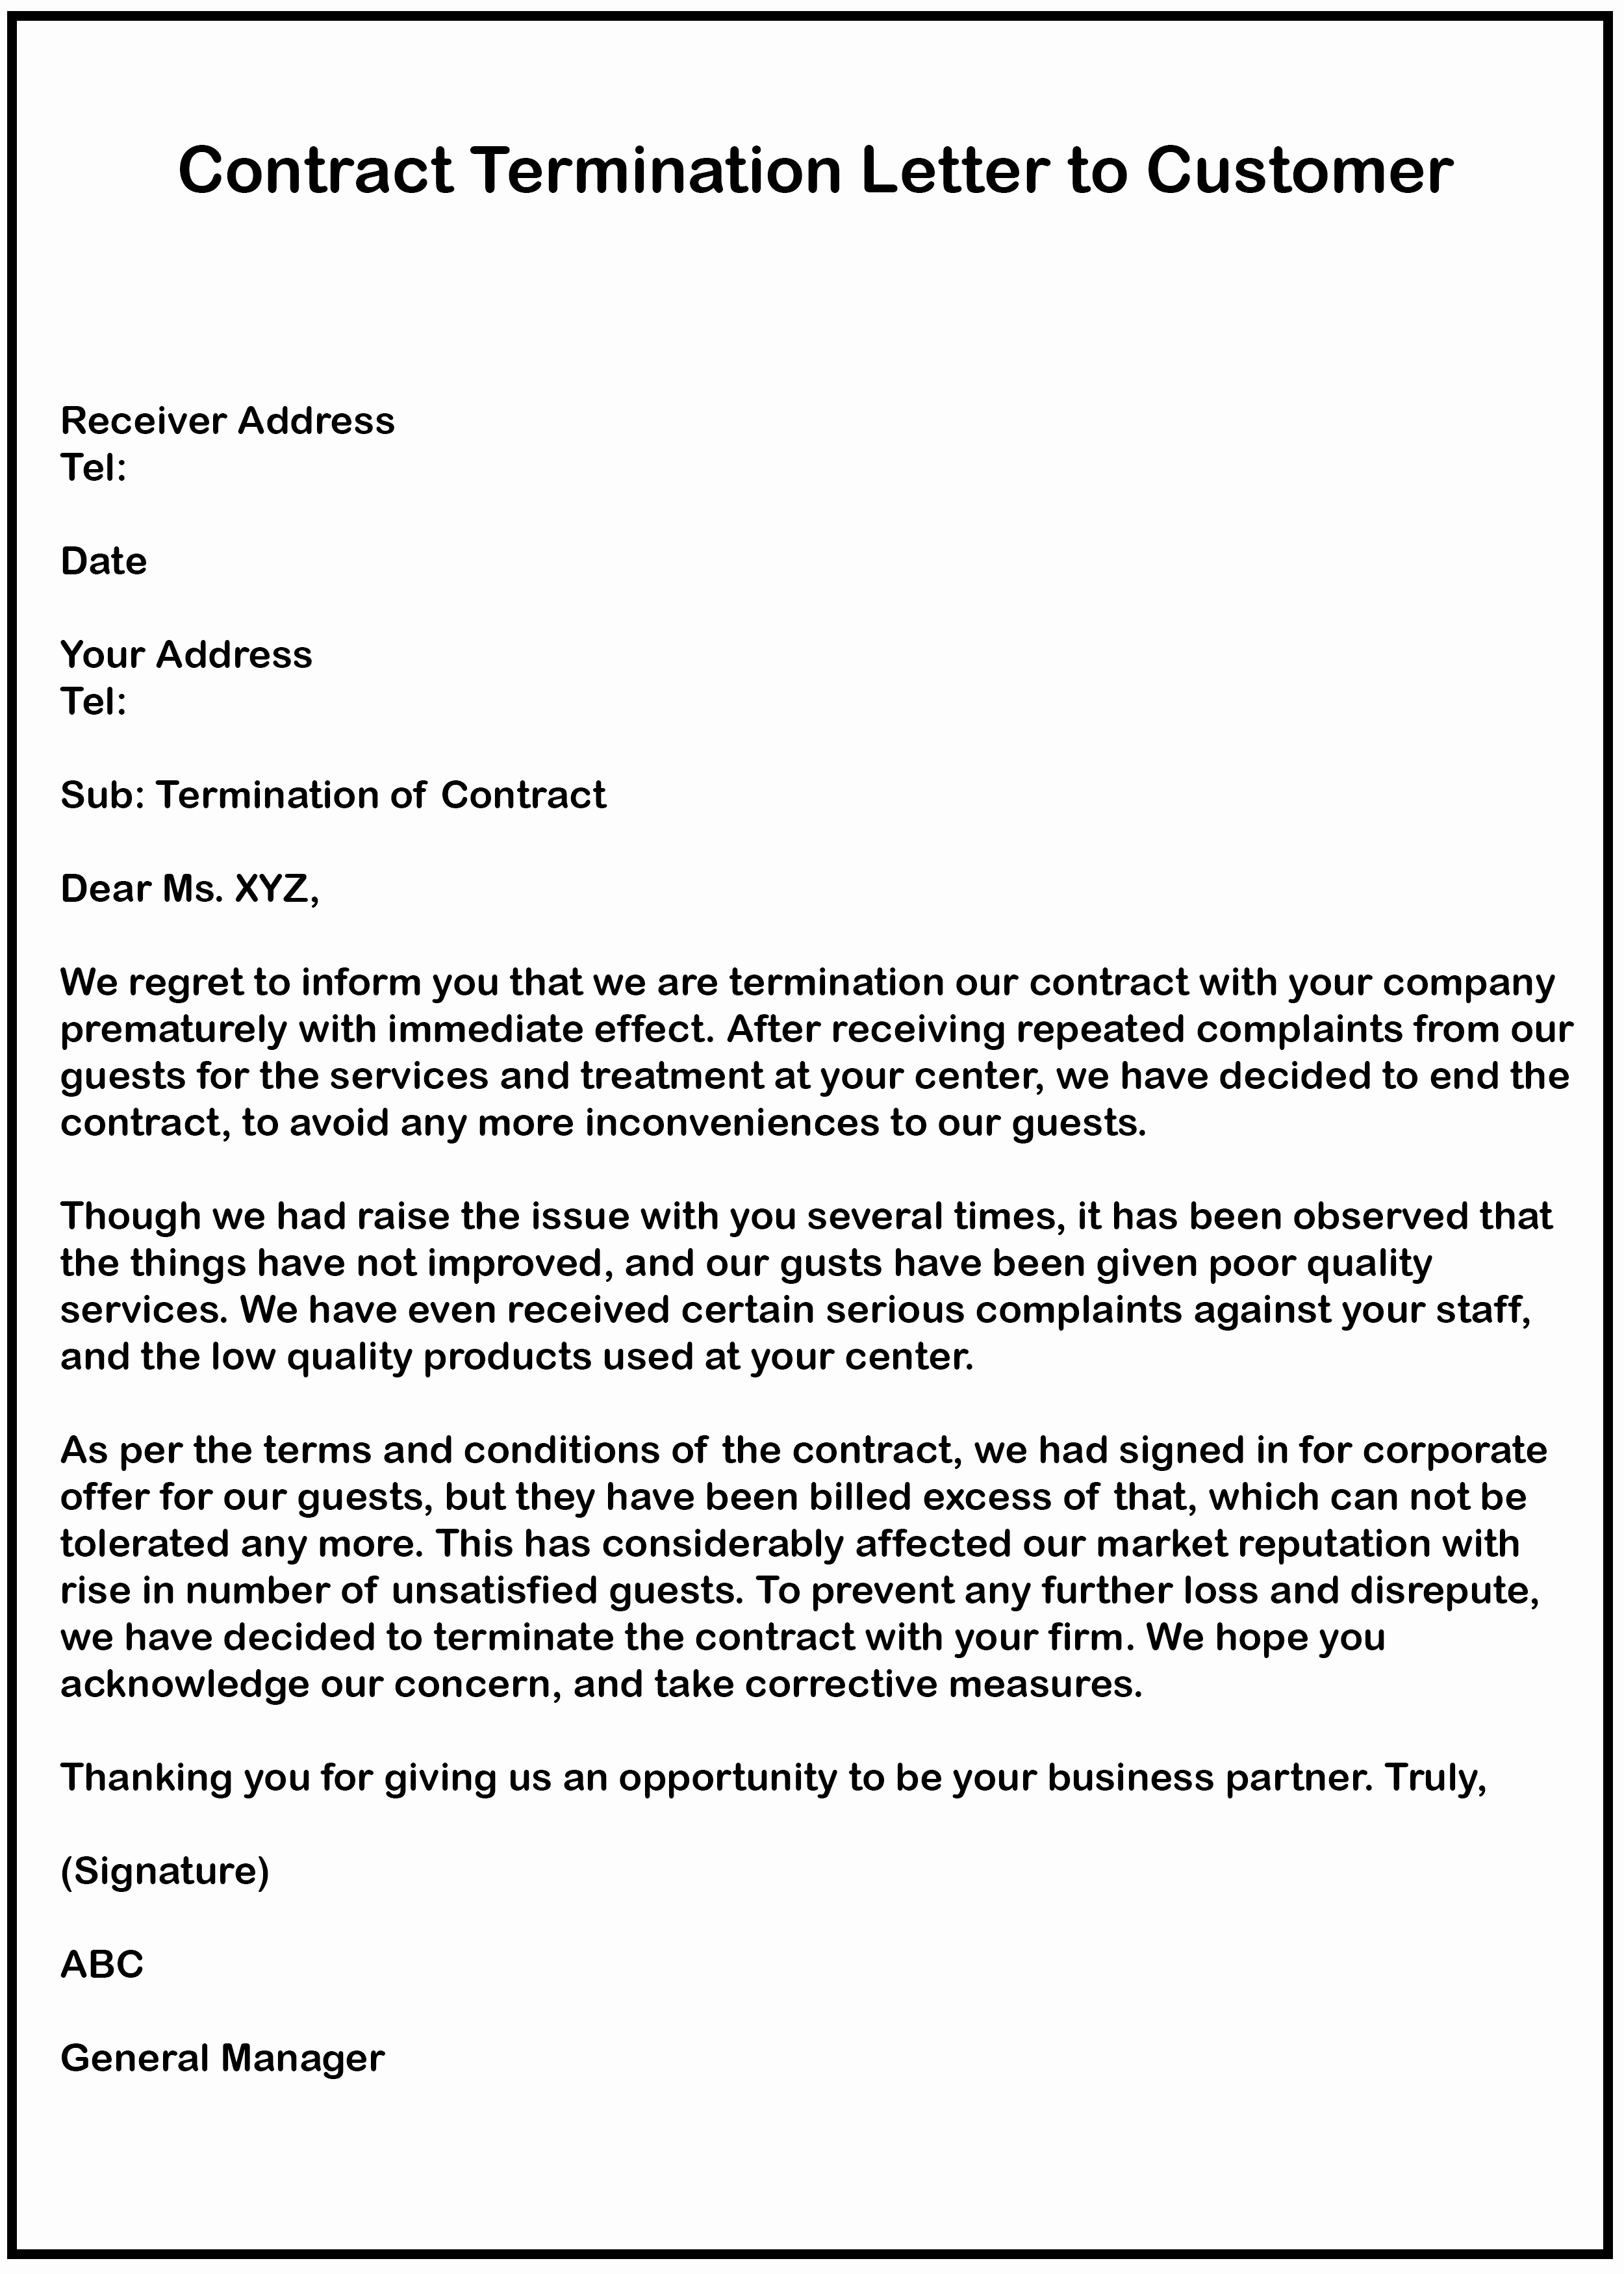 Business Contract Termination Letter Template Inspirational 4 Free Business Contract Termination Letter with Example